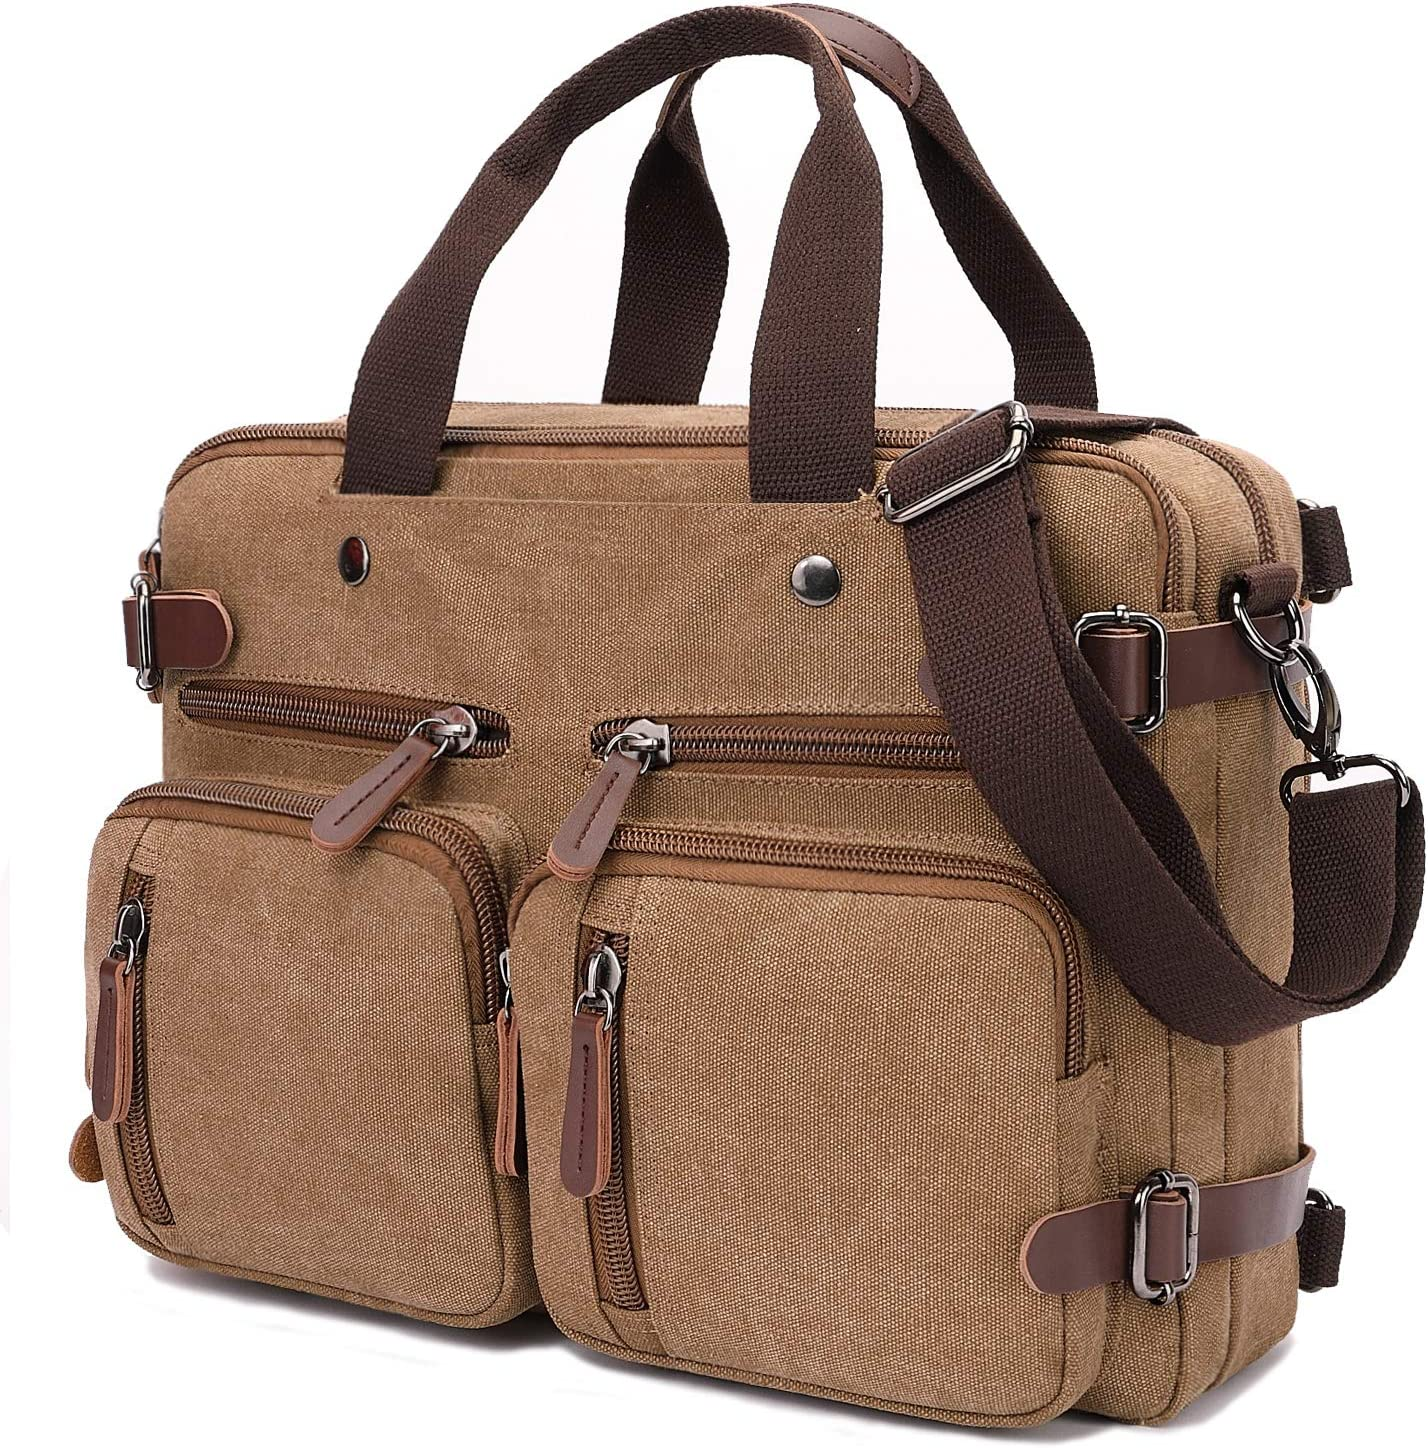 Convertible Laptop Backpack 15.6 Inch Messenger Bag for Men/Women (15.6 Inch, Coffee)